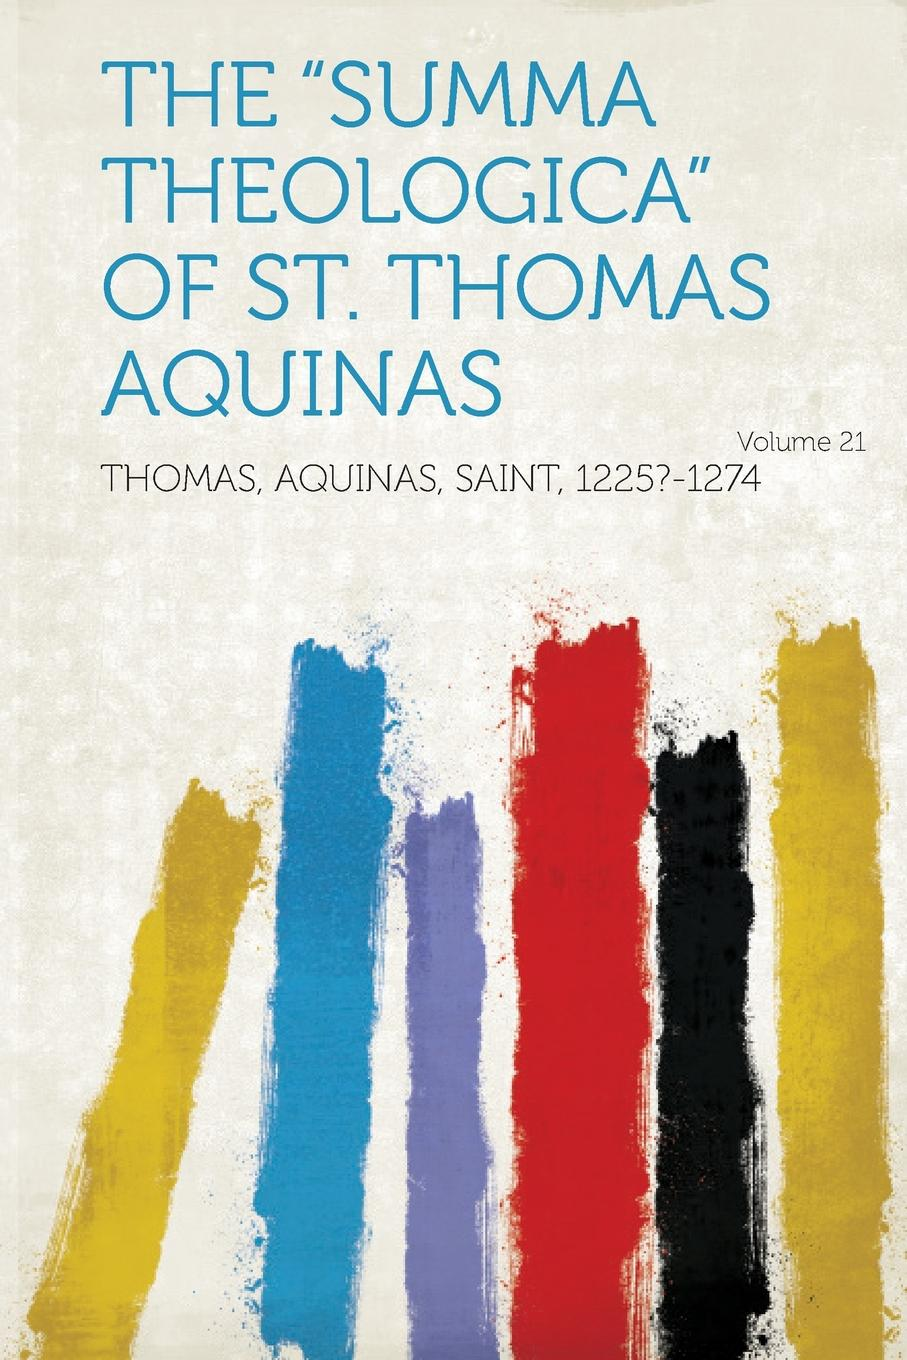 Thomas Aquinas The Summa Theologica of St. Thomas Aquinas Volume 21 aquinas saint thomas aquinas ethicus or the moral teaching of st thomas a translation of the principle portions of the second part of the summa theologica with notes